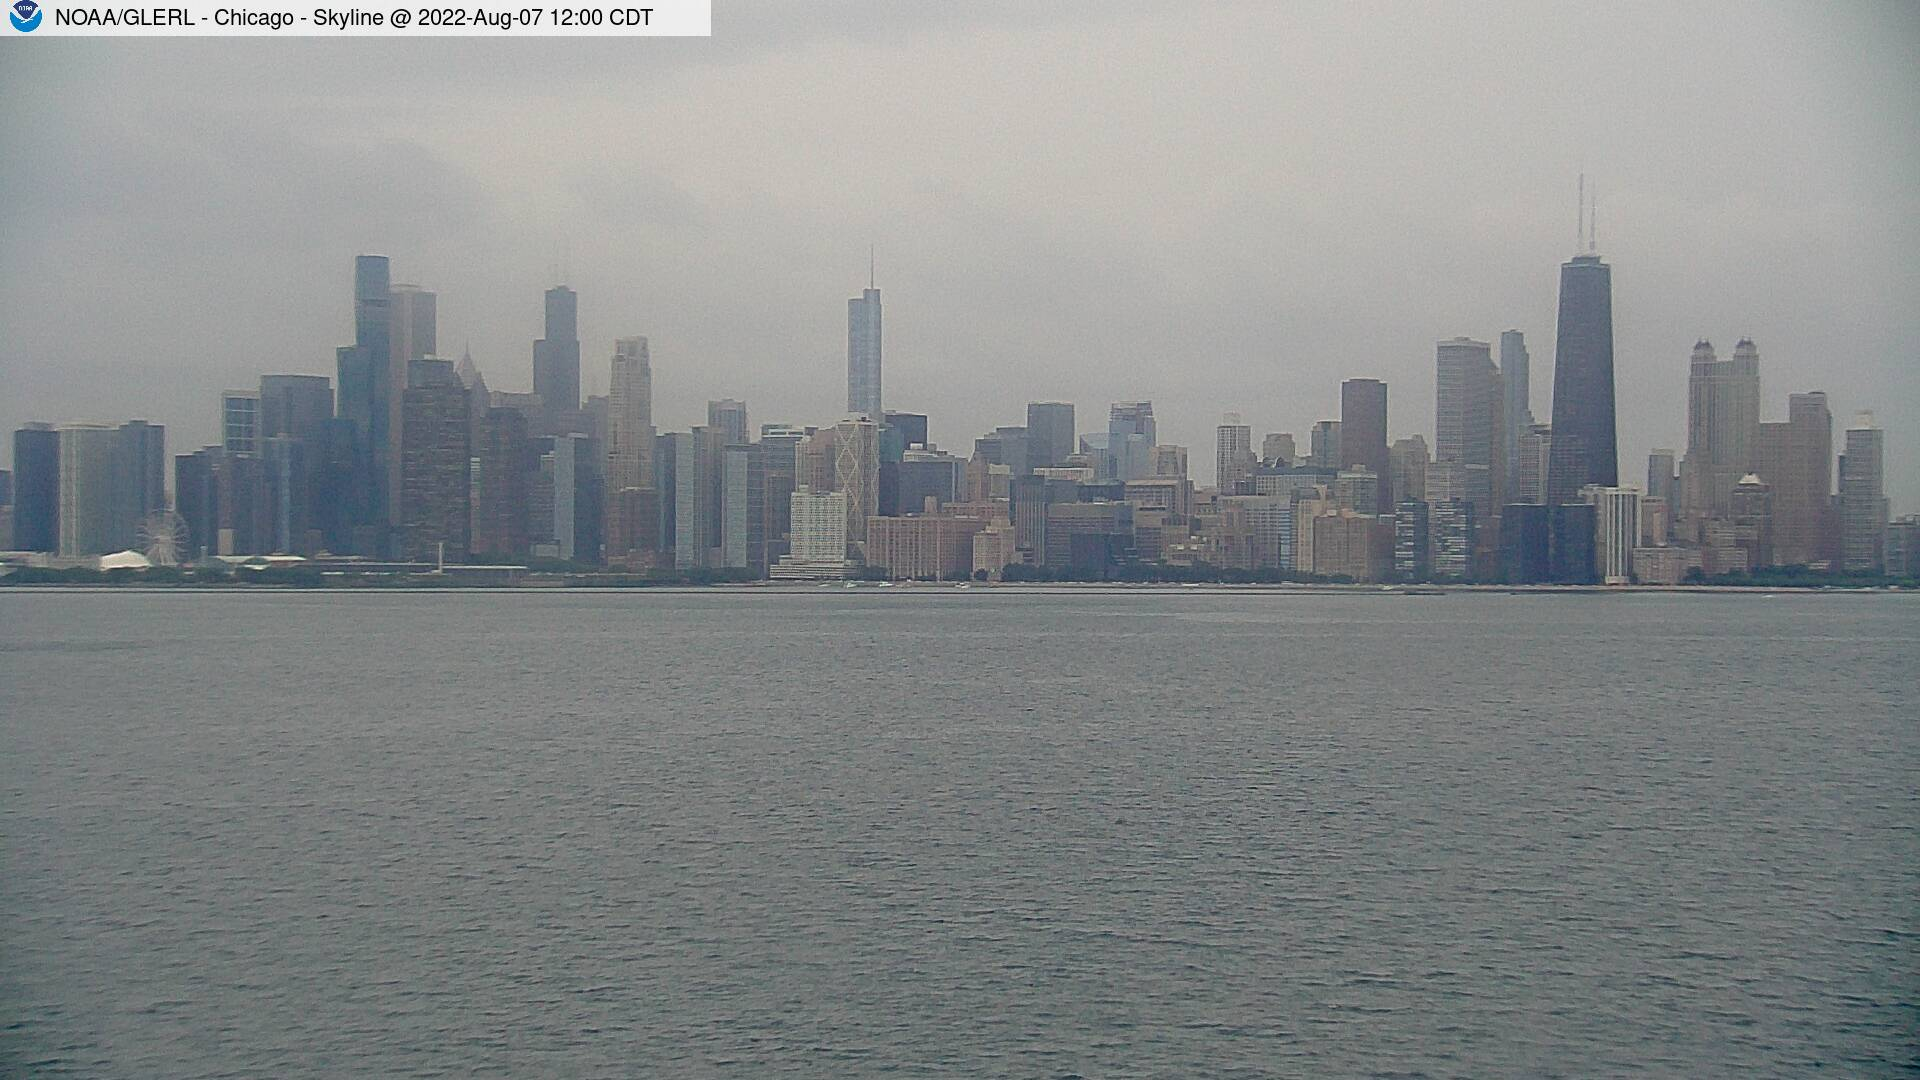 Chicago, IL Meteorological Data & WebCam - On the Harrison-Dever crib, 3 miles offshore